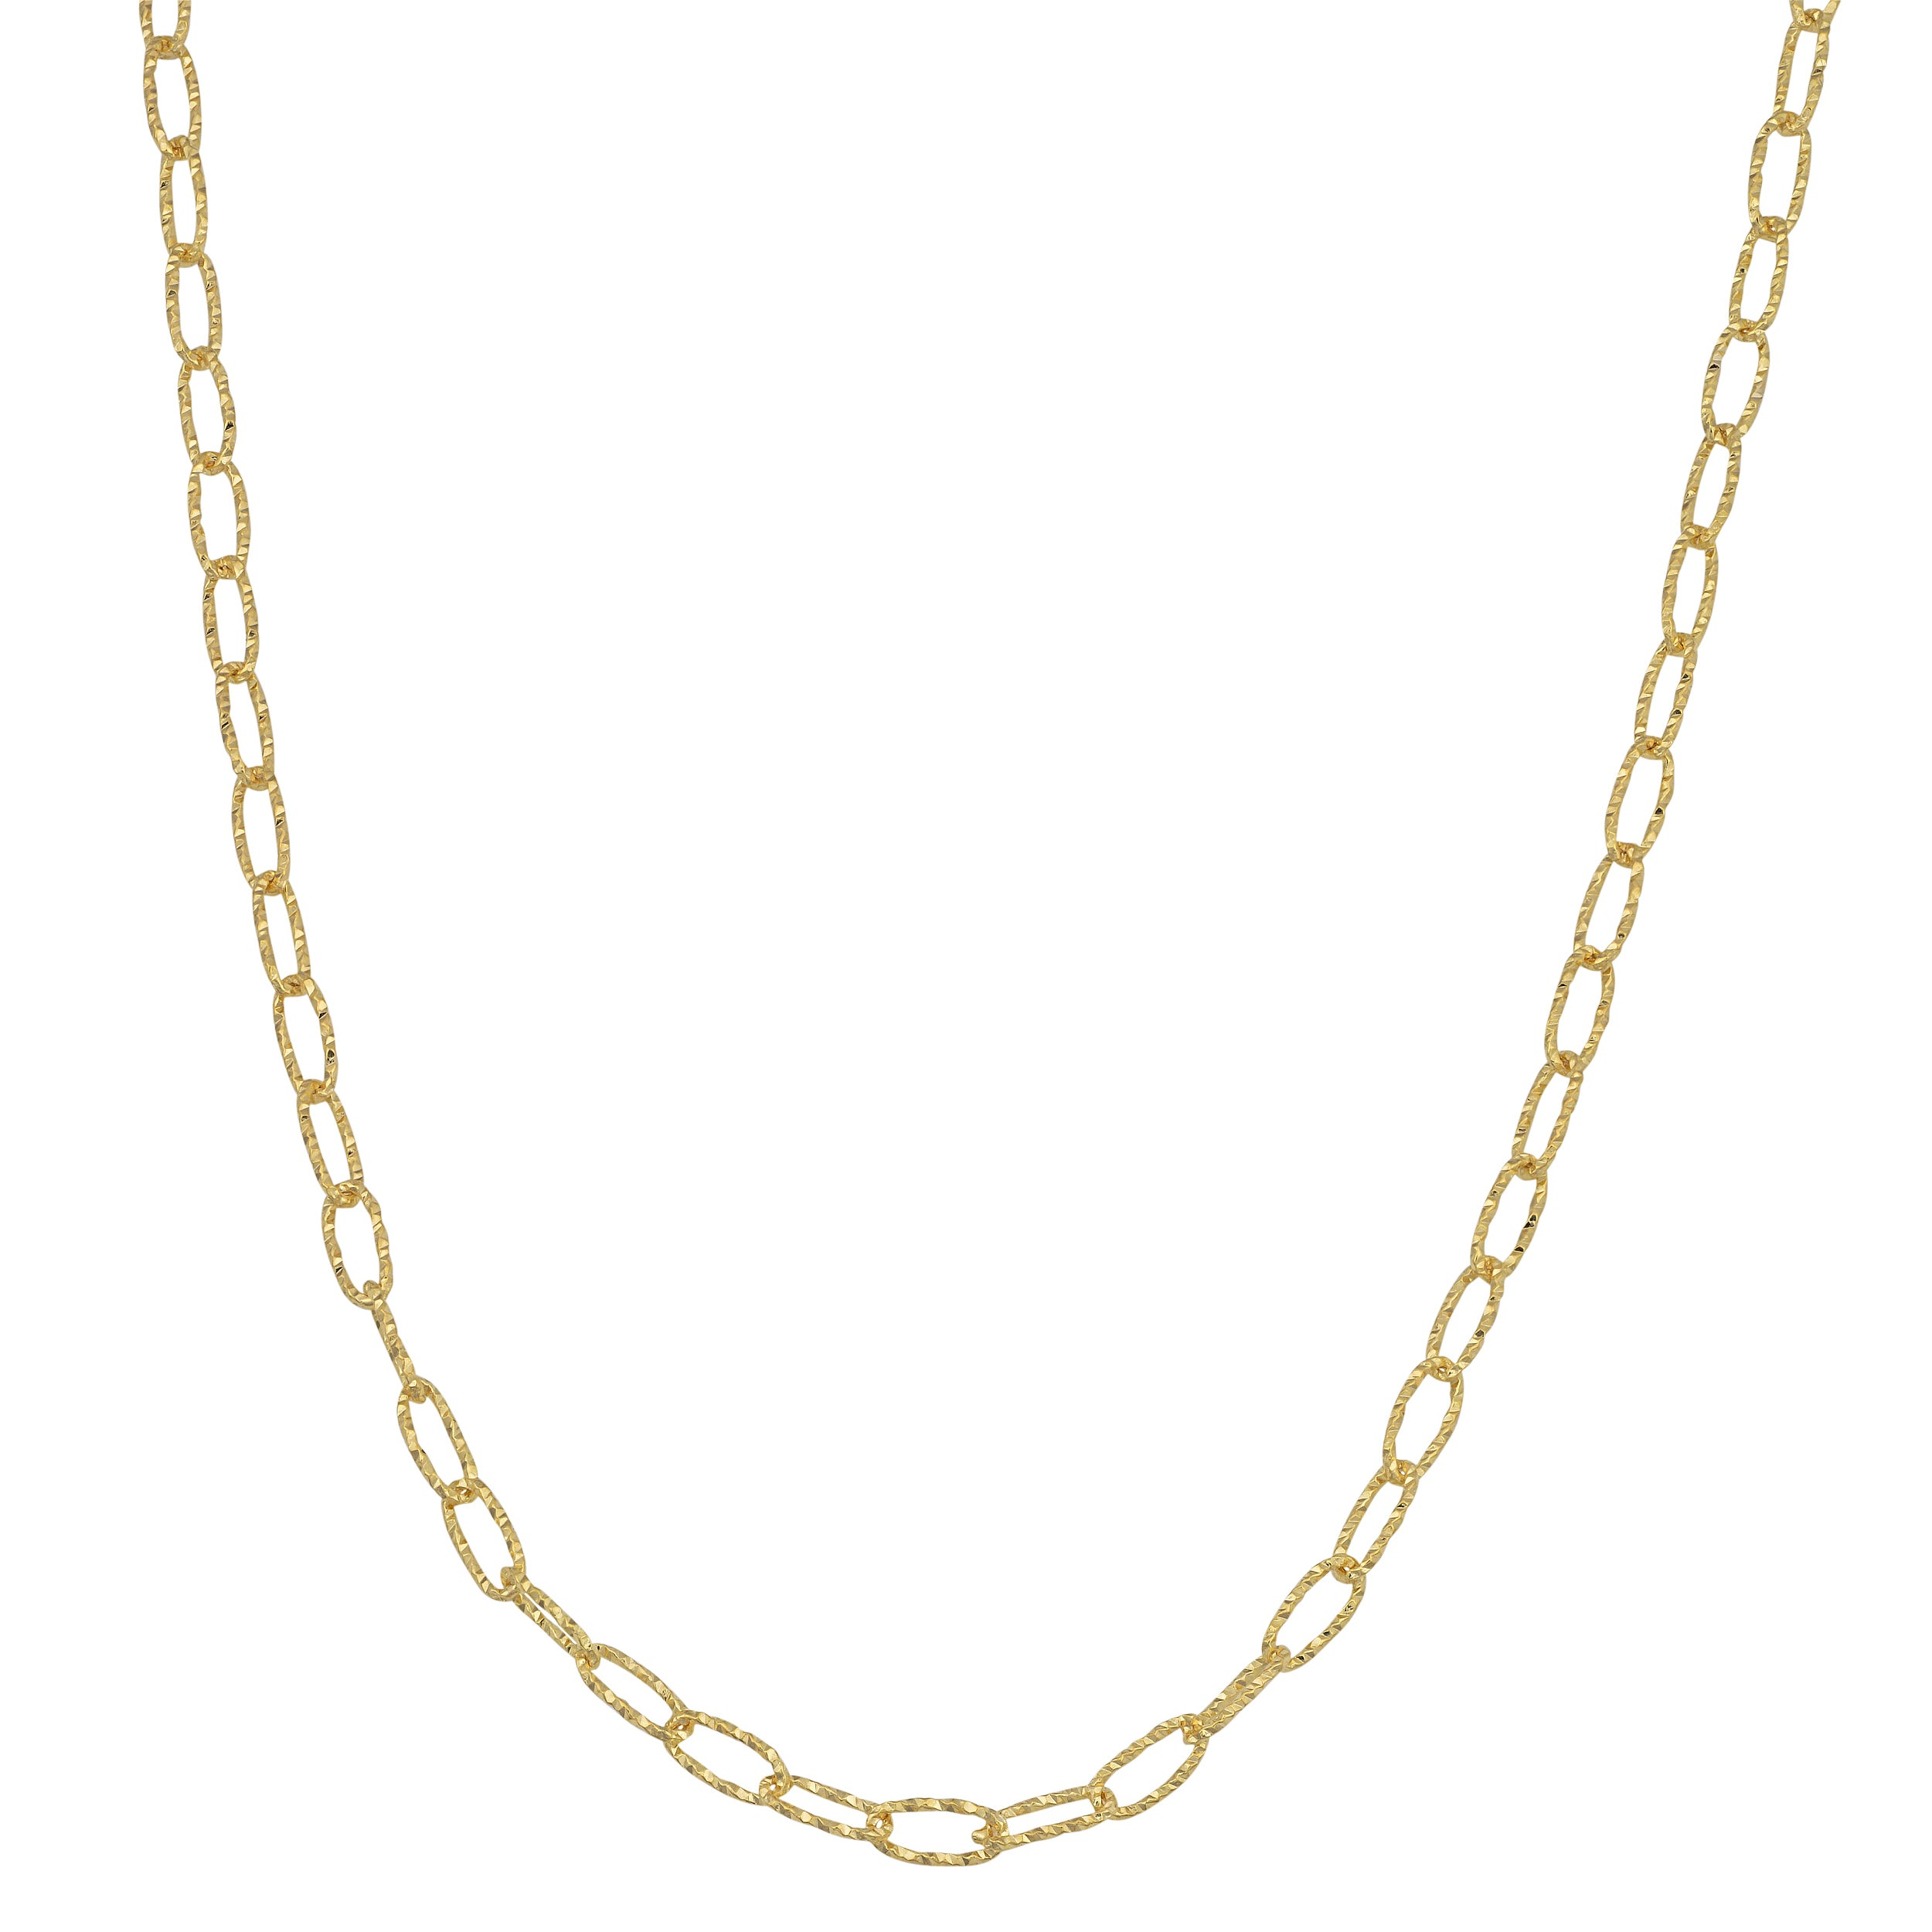 chain realreal necklace necklaces yurman david the enlarged xl jewelry oval link products